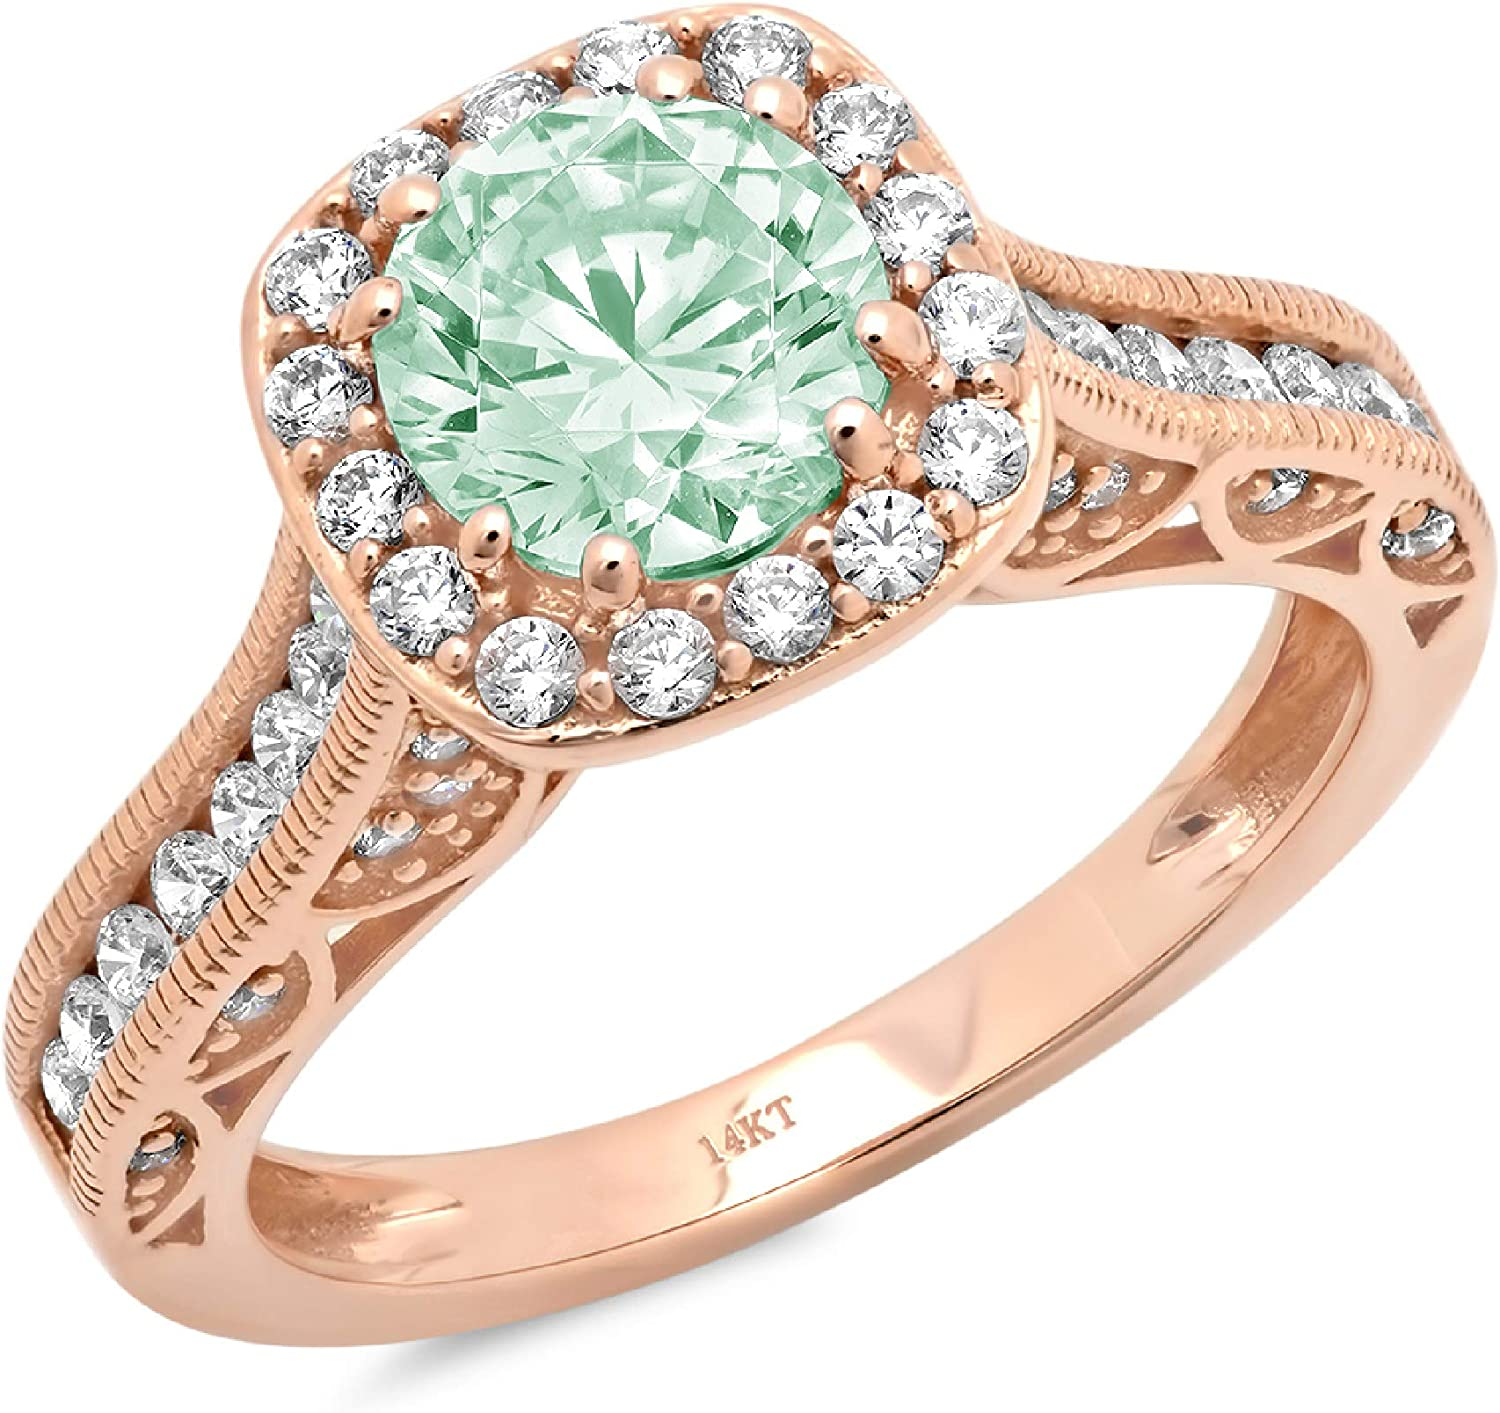 1.89ct Brilliant Round Cut Solitaire Halo Turquoise Green Ideal VVS1 Simulated Diamond CZ Engagement Promise Statement Anniversary Bridal Wedding Accent Ring Solid 14k Rose Gold